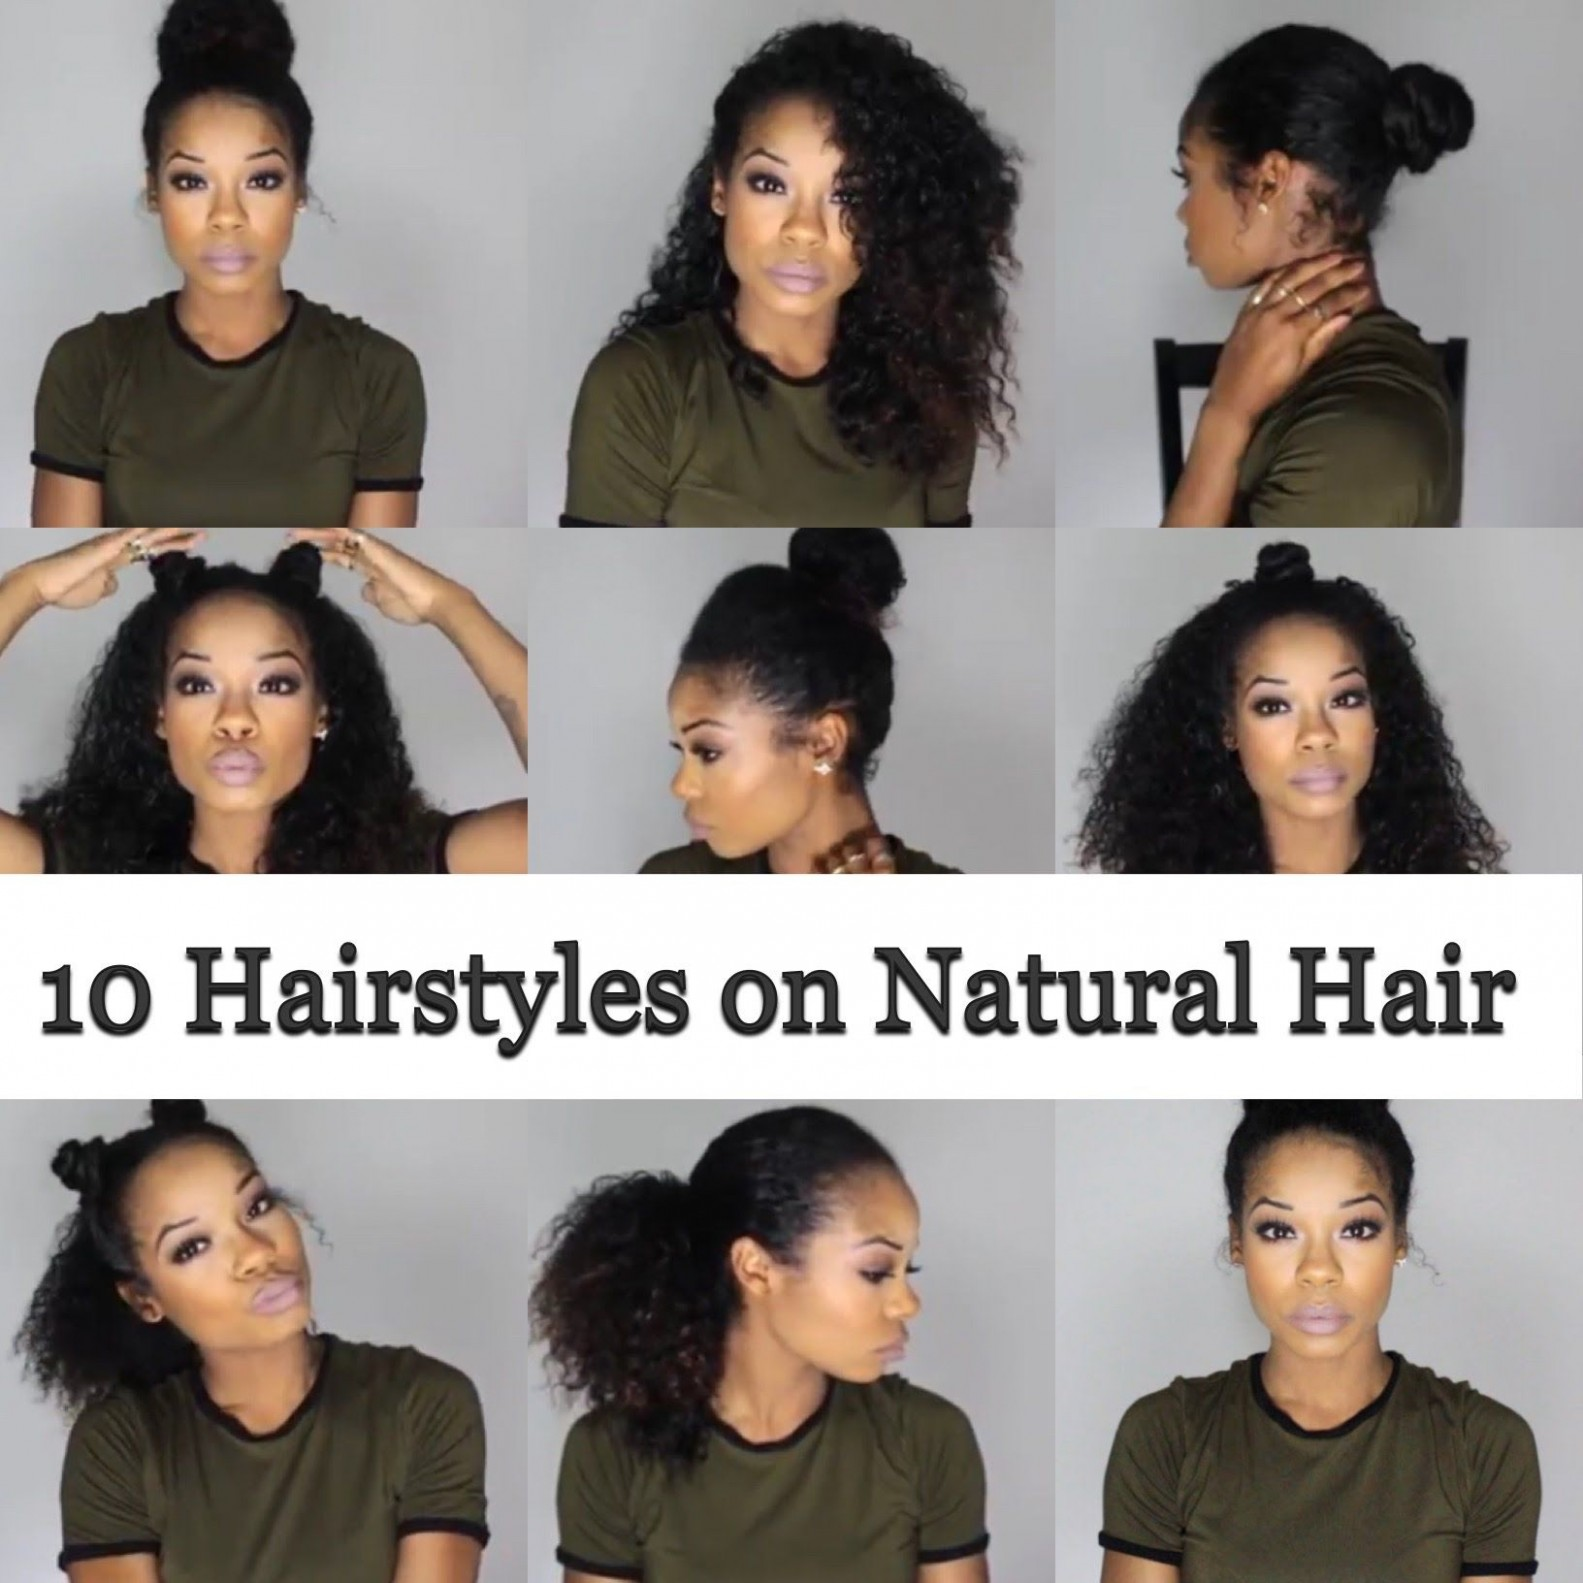 8 Quick And Easy Hairstyles On Natural Hair 8B/8C Natural Hairstyles For 3B Hair